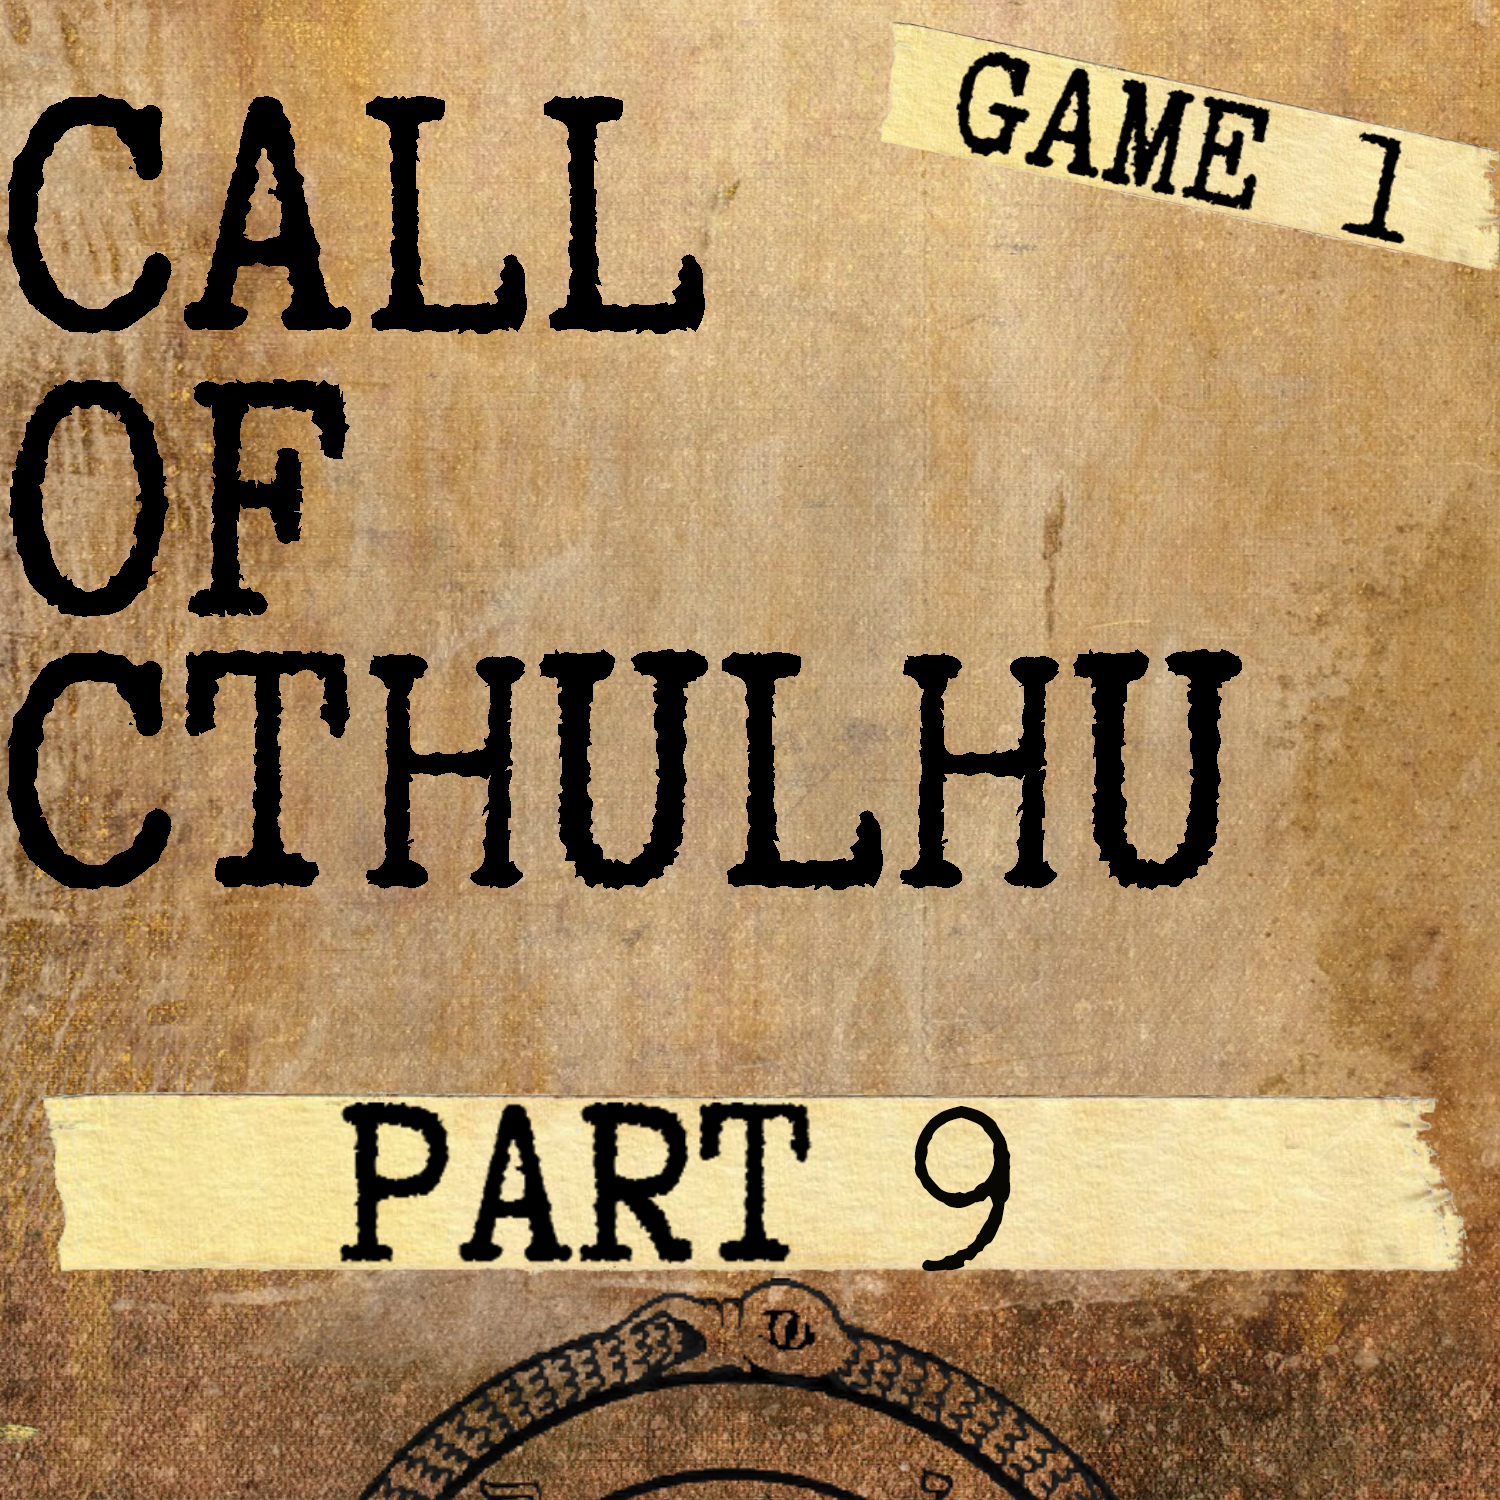 Artwork for Call of Cthulhu - Game 1: Part 9